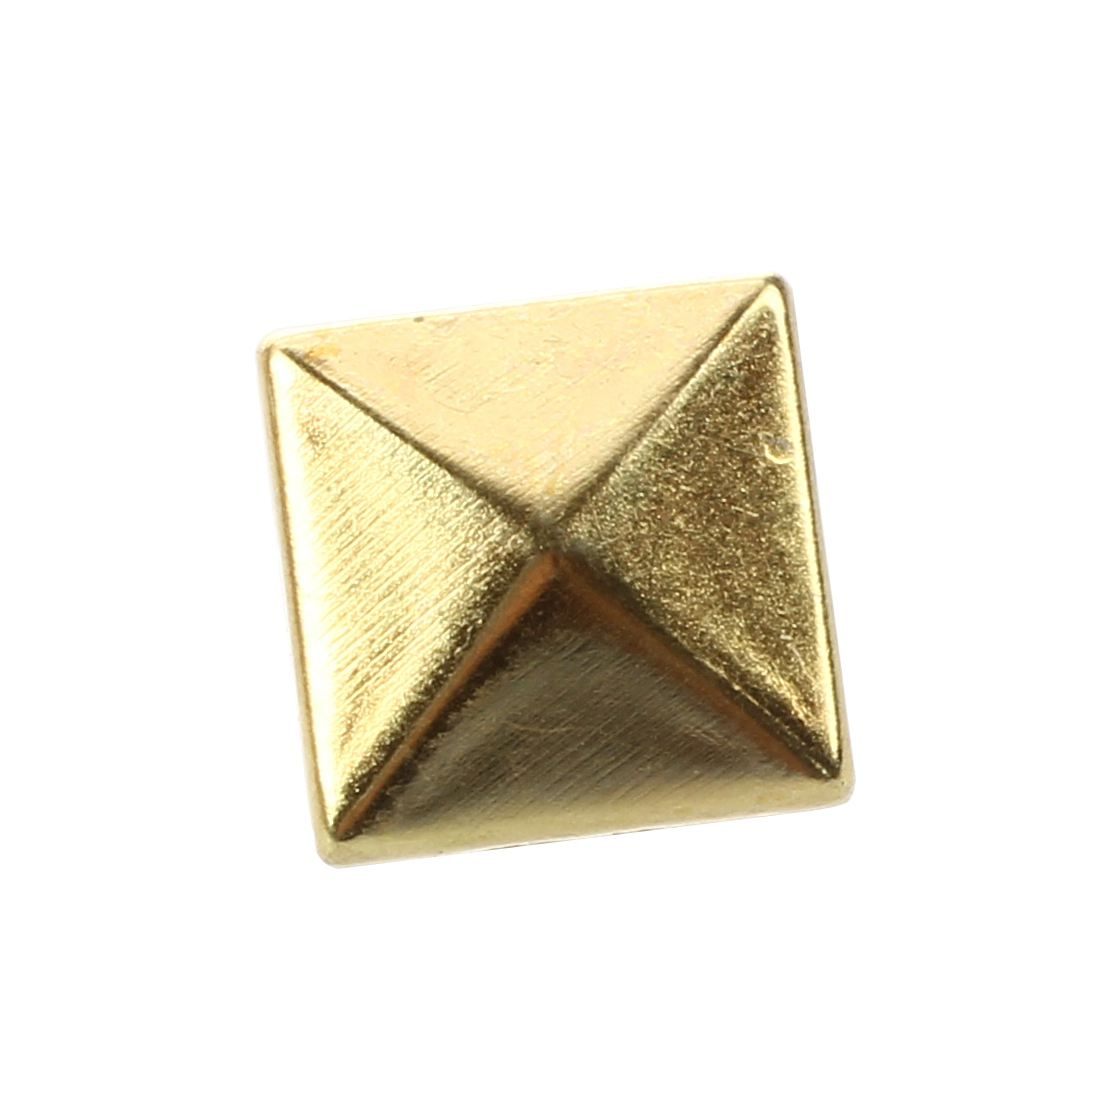 Pyramid Studs Bulk Gold Color Square 10mm-in Garment